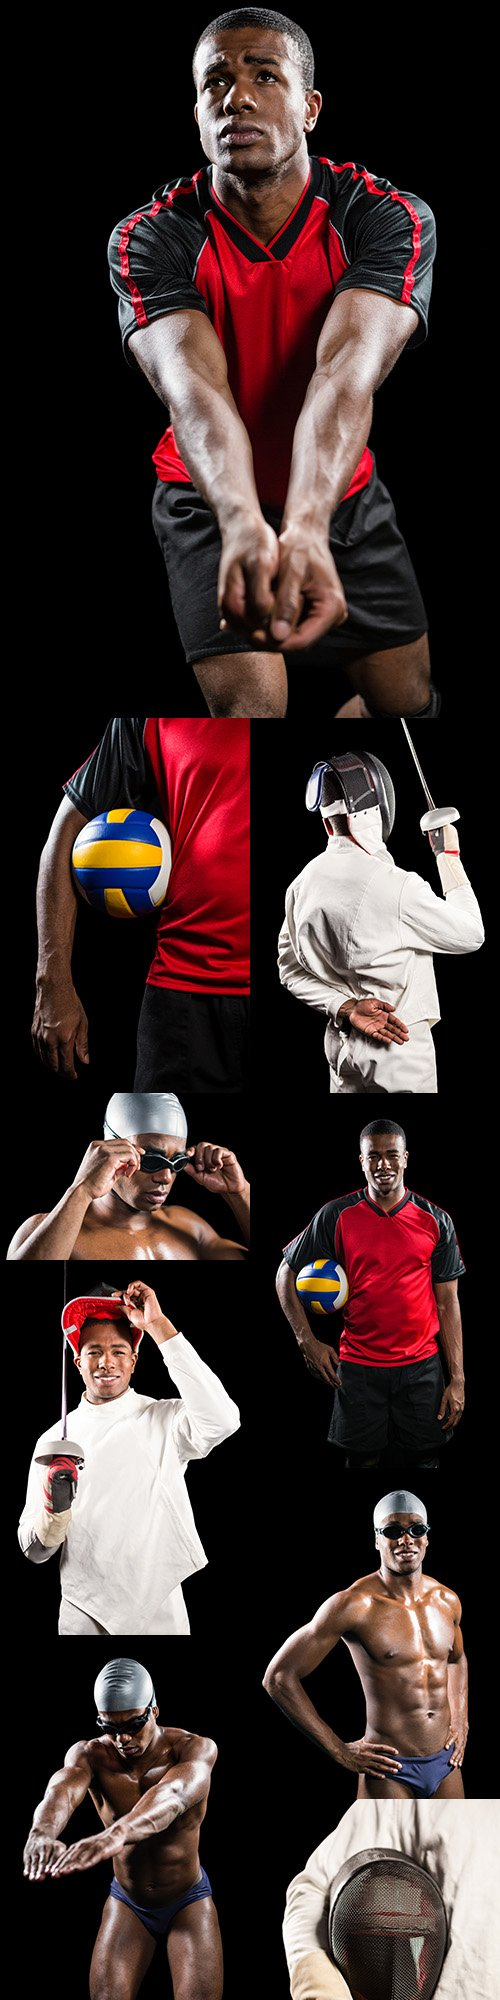 Football, swimmer and fencer professional sports